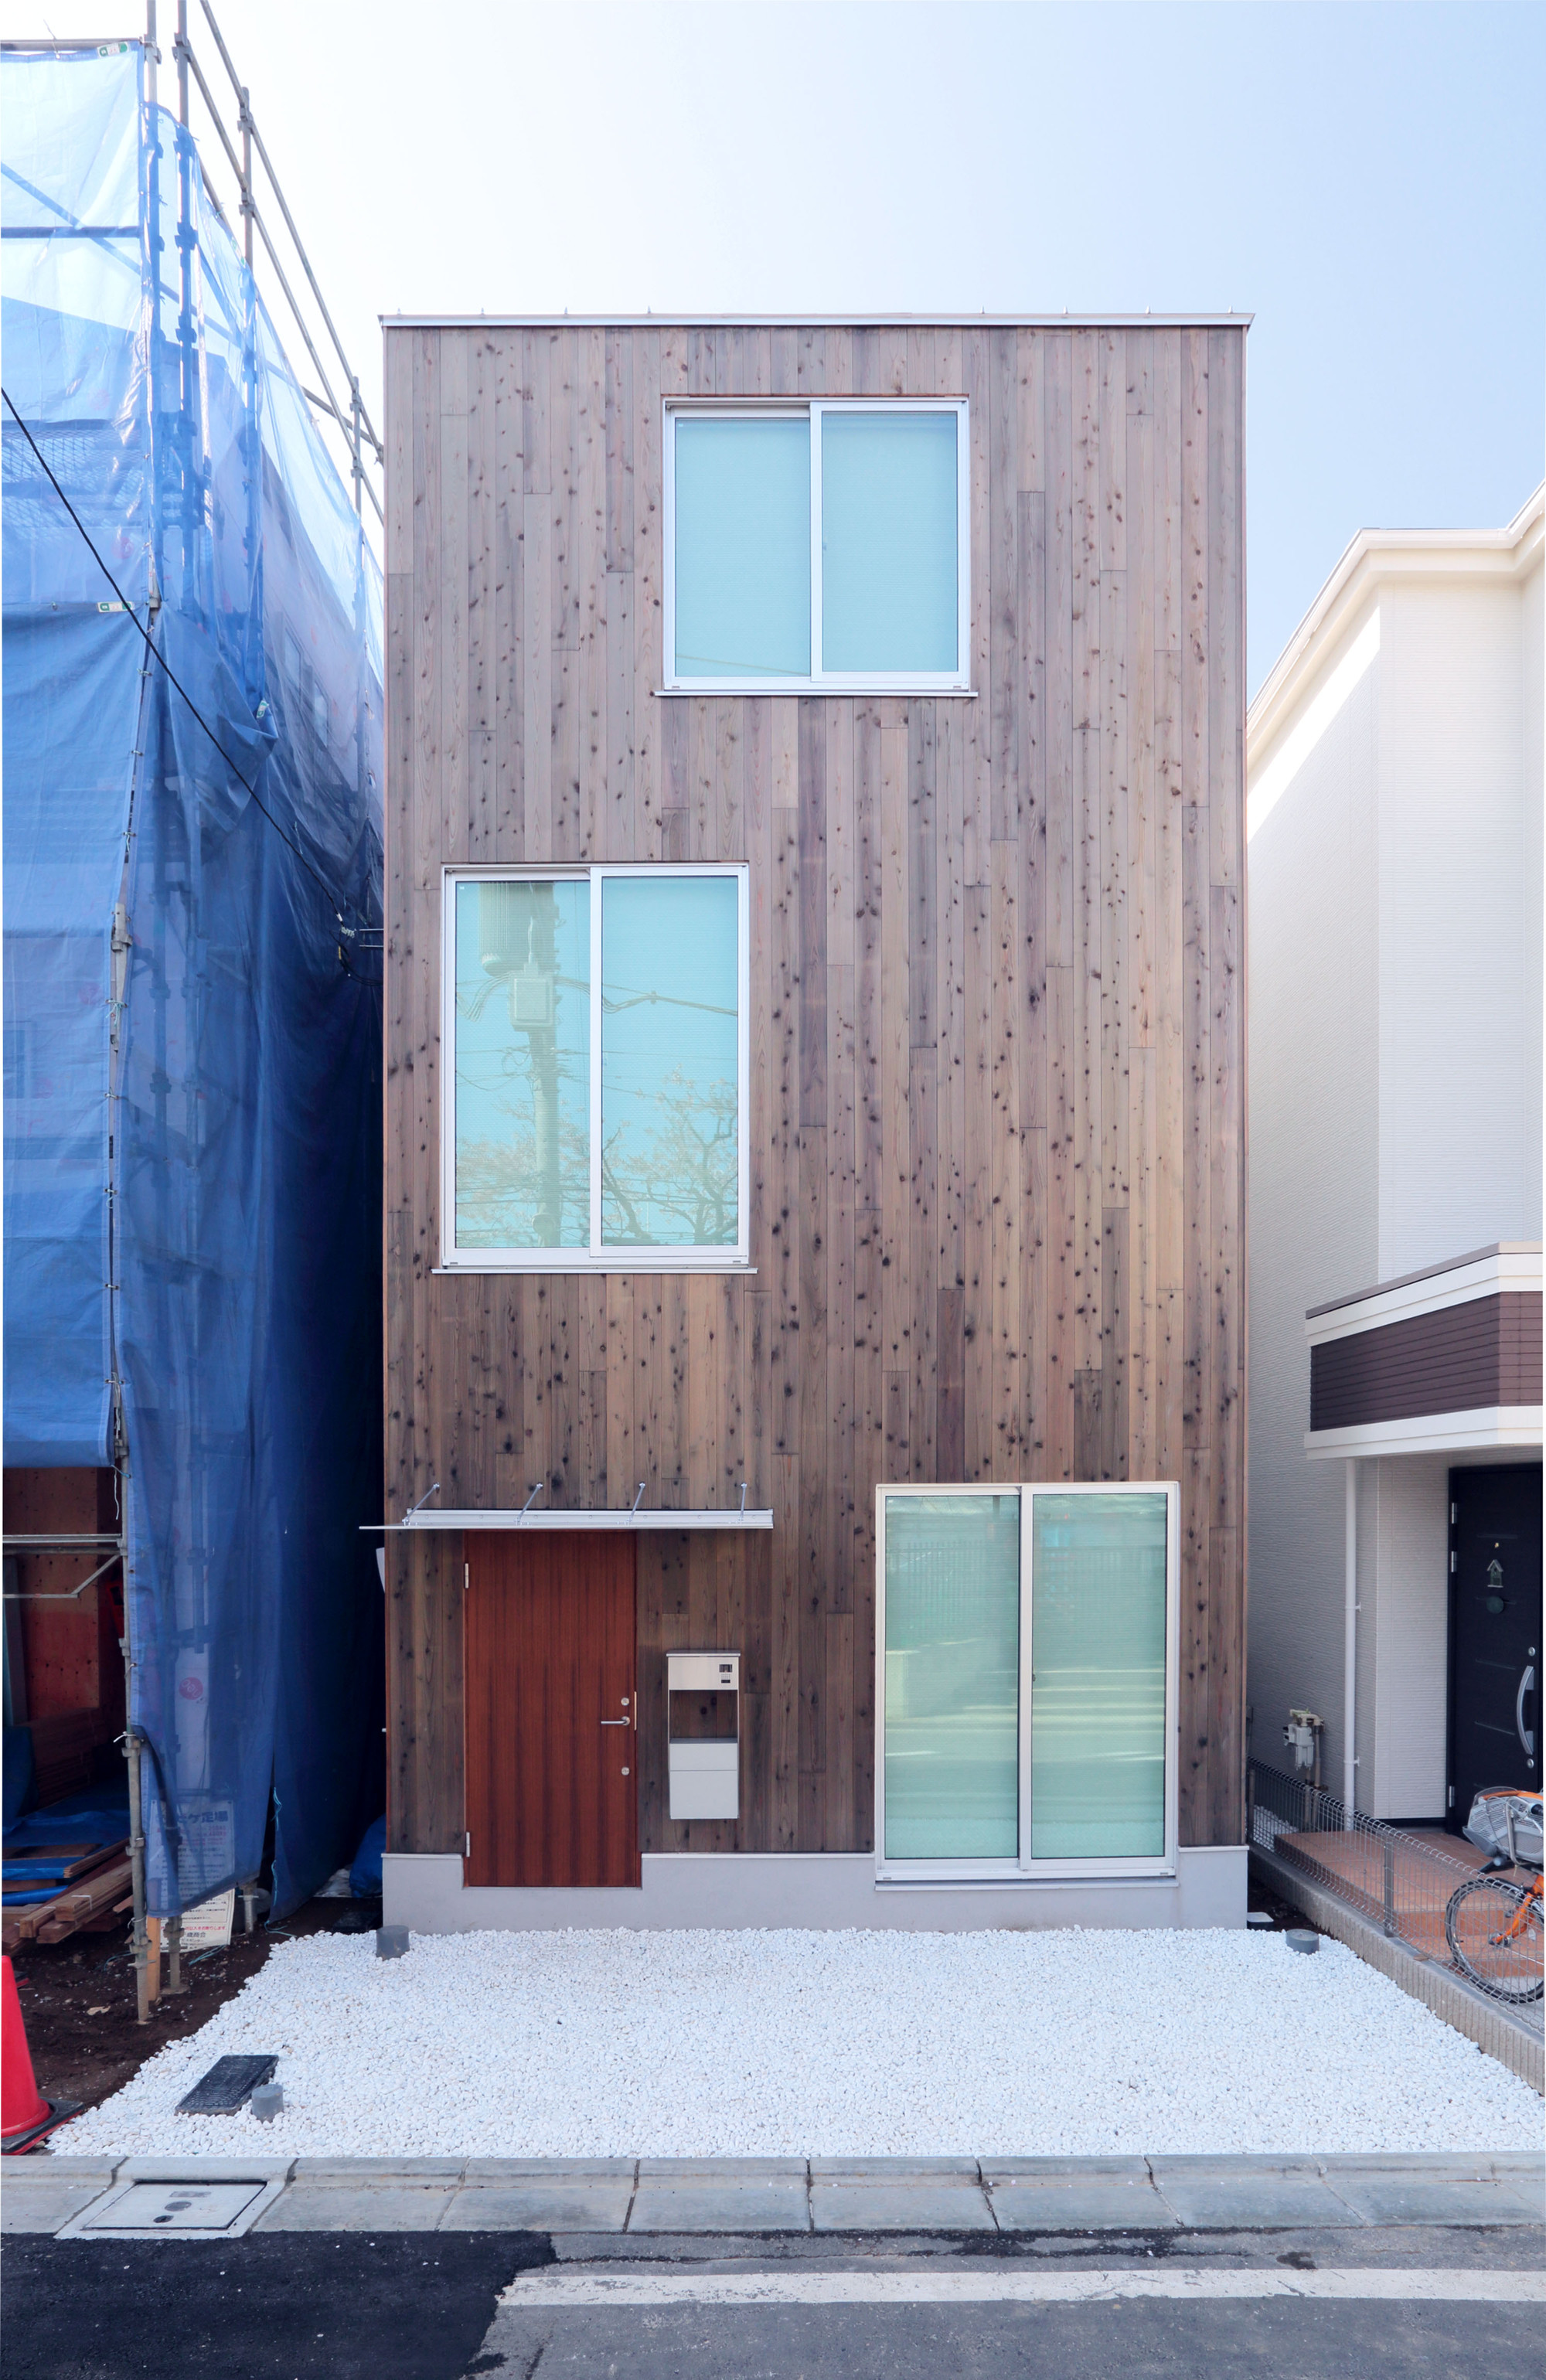 design your own home with mujis prefab vertical housecourtesy of muji - Design Your Own Home